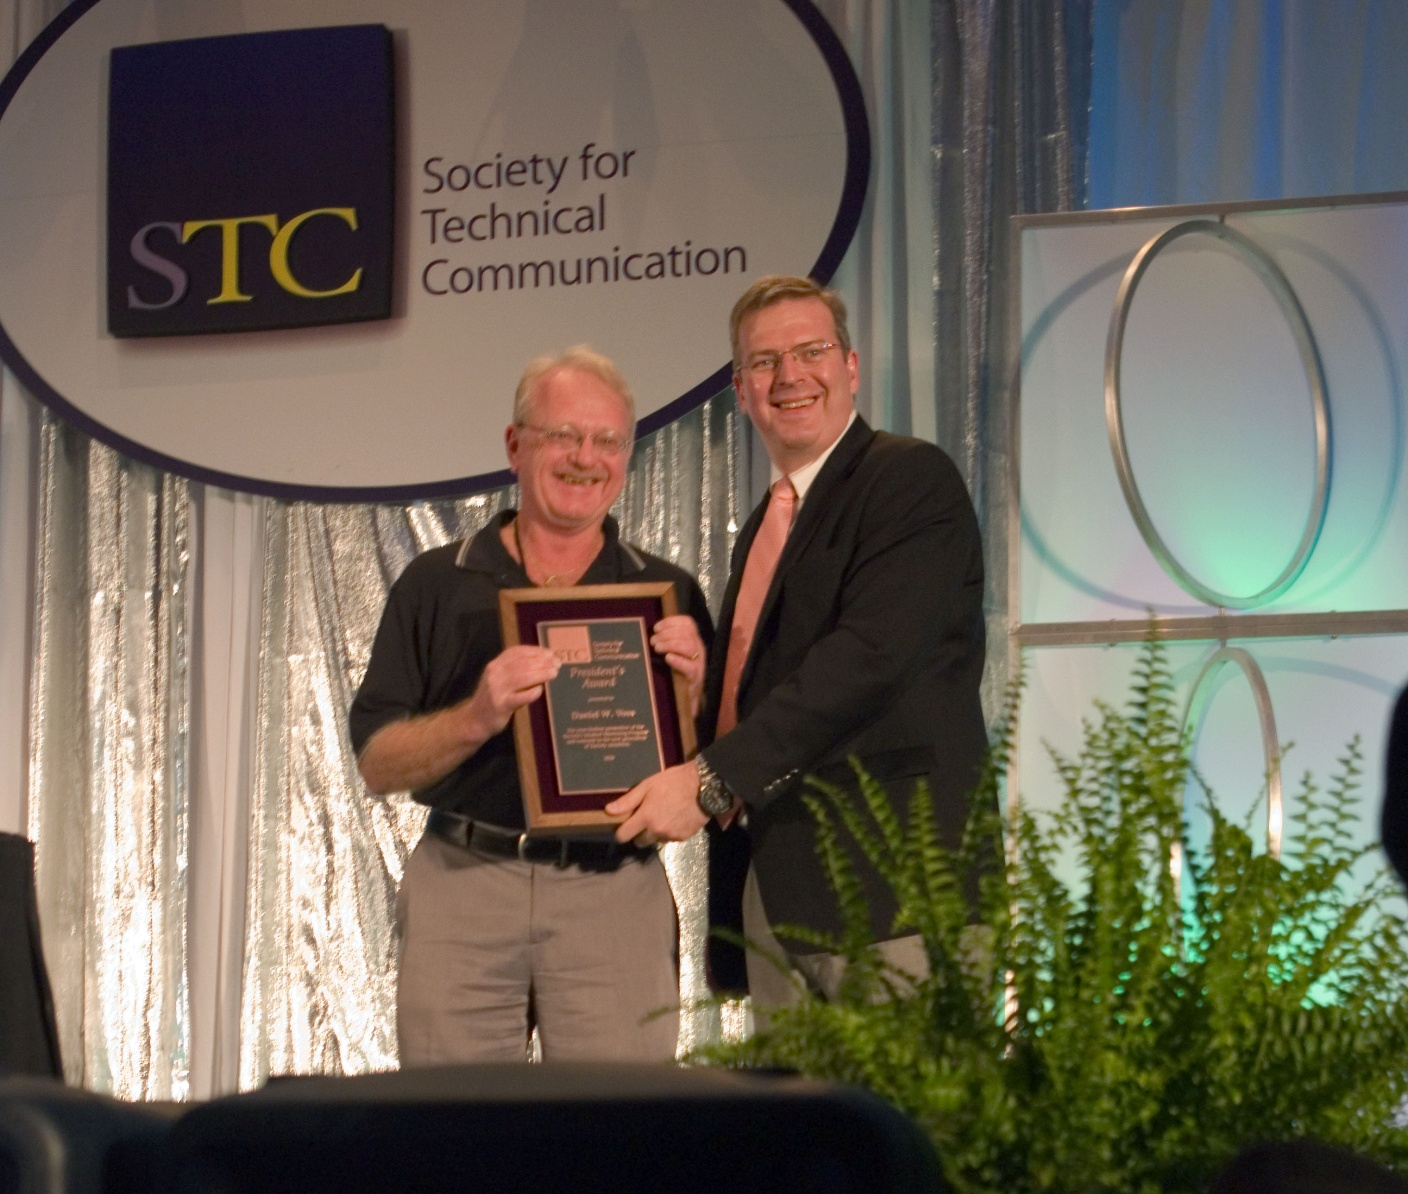 Dan Voss receives the STC President's Award onstage at the Summit.